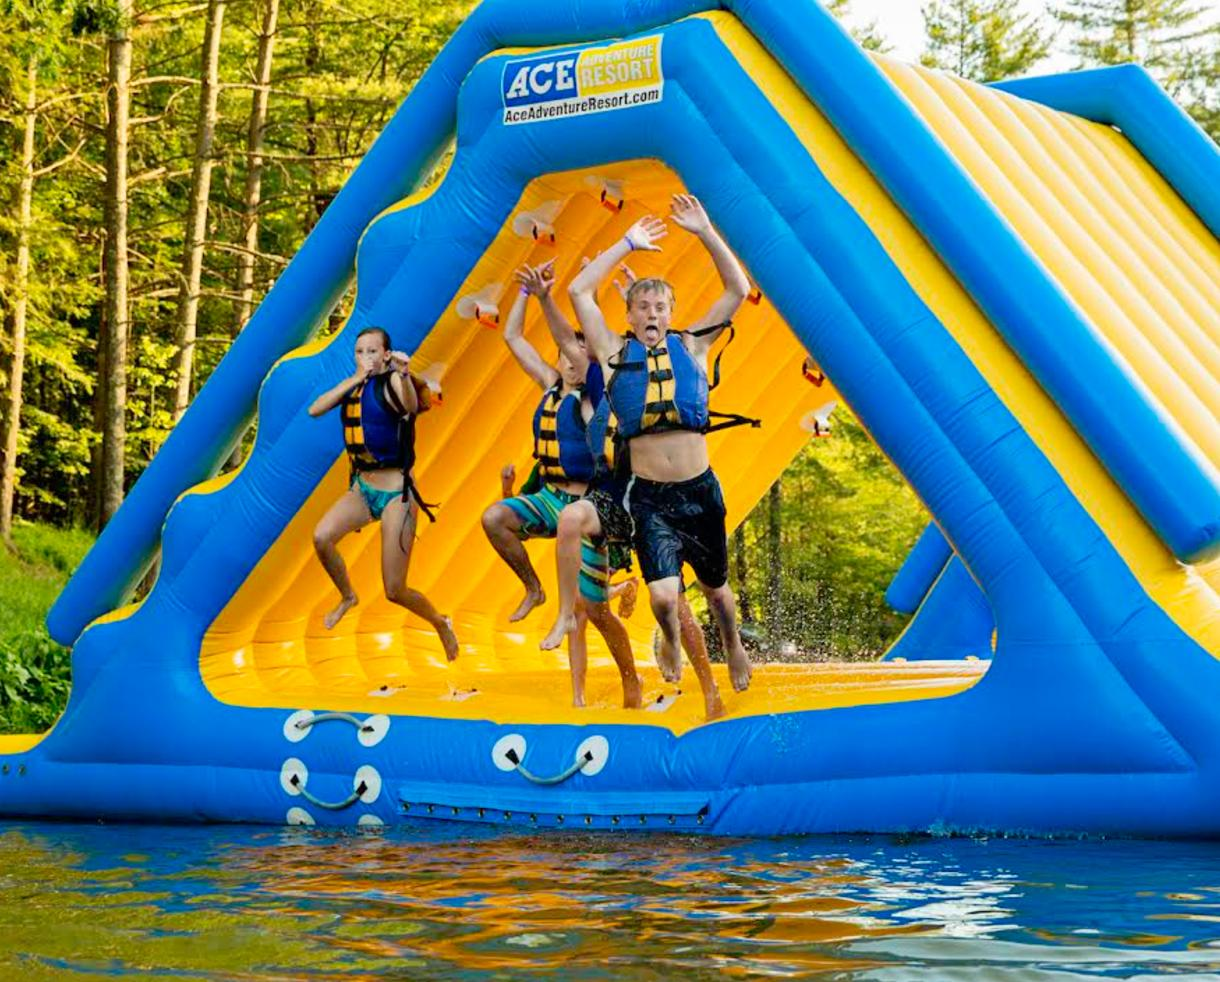 $72+ Per Person for 2-Night Kid-Friendly White Water Rafting, Camping & Wonderland Waterpark Pass - ACE Adventure Resort in WV (30% Off)